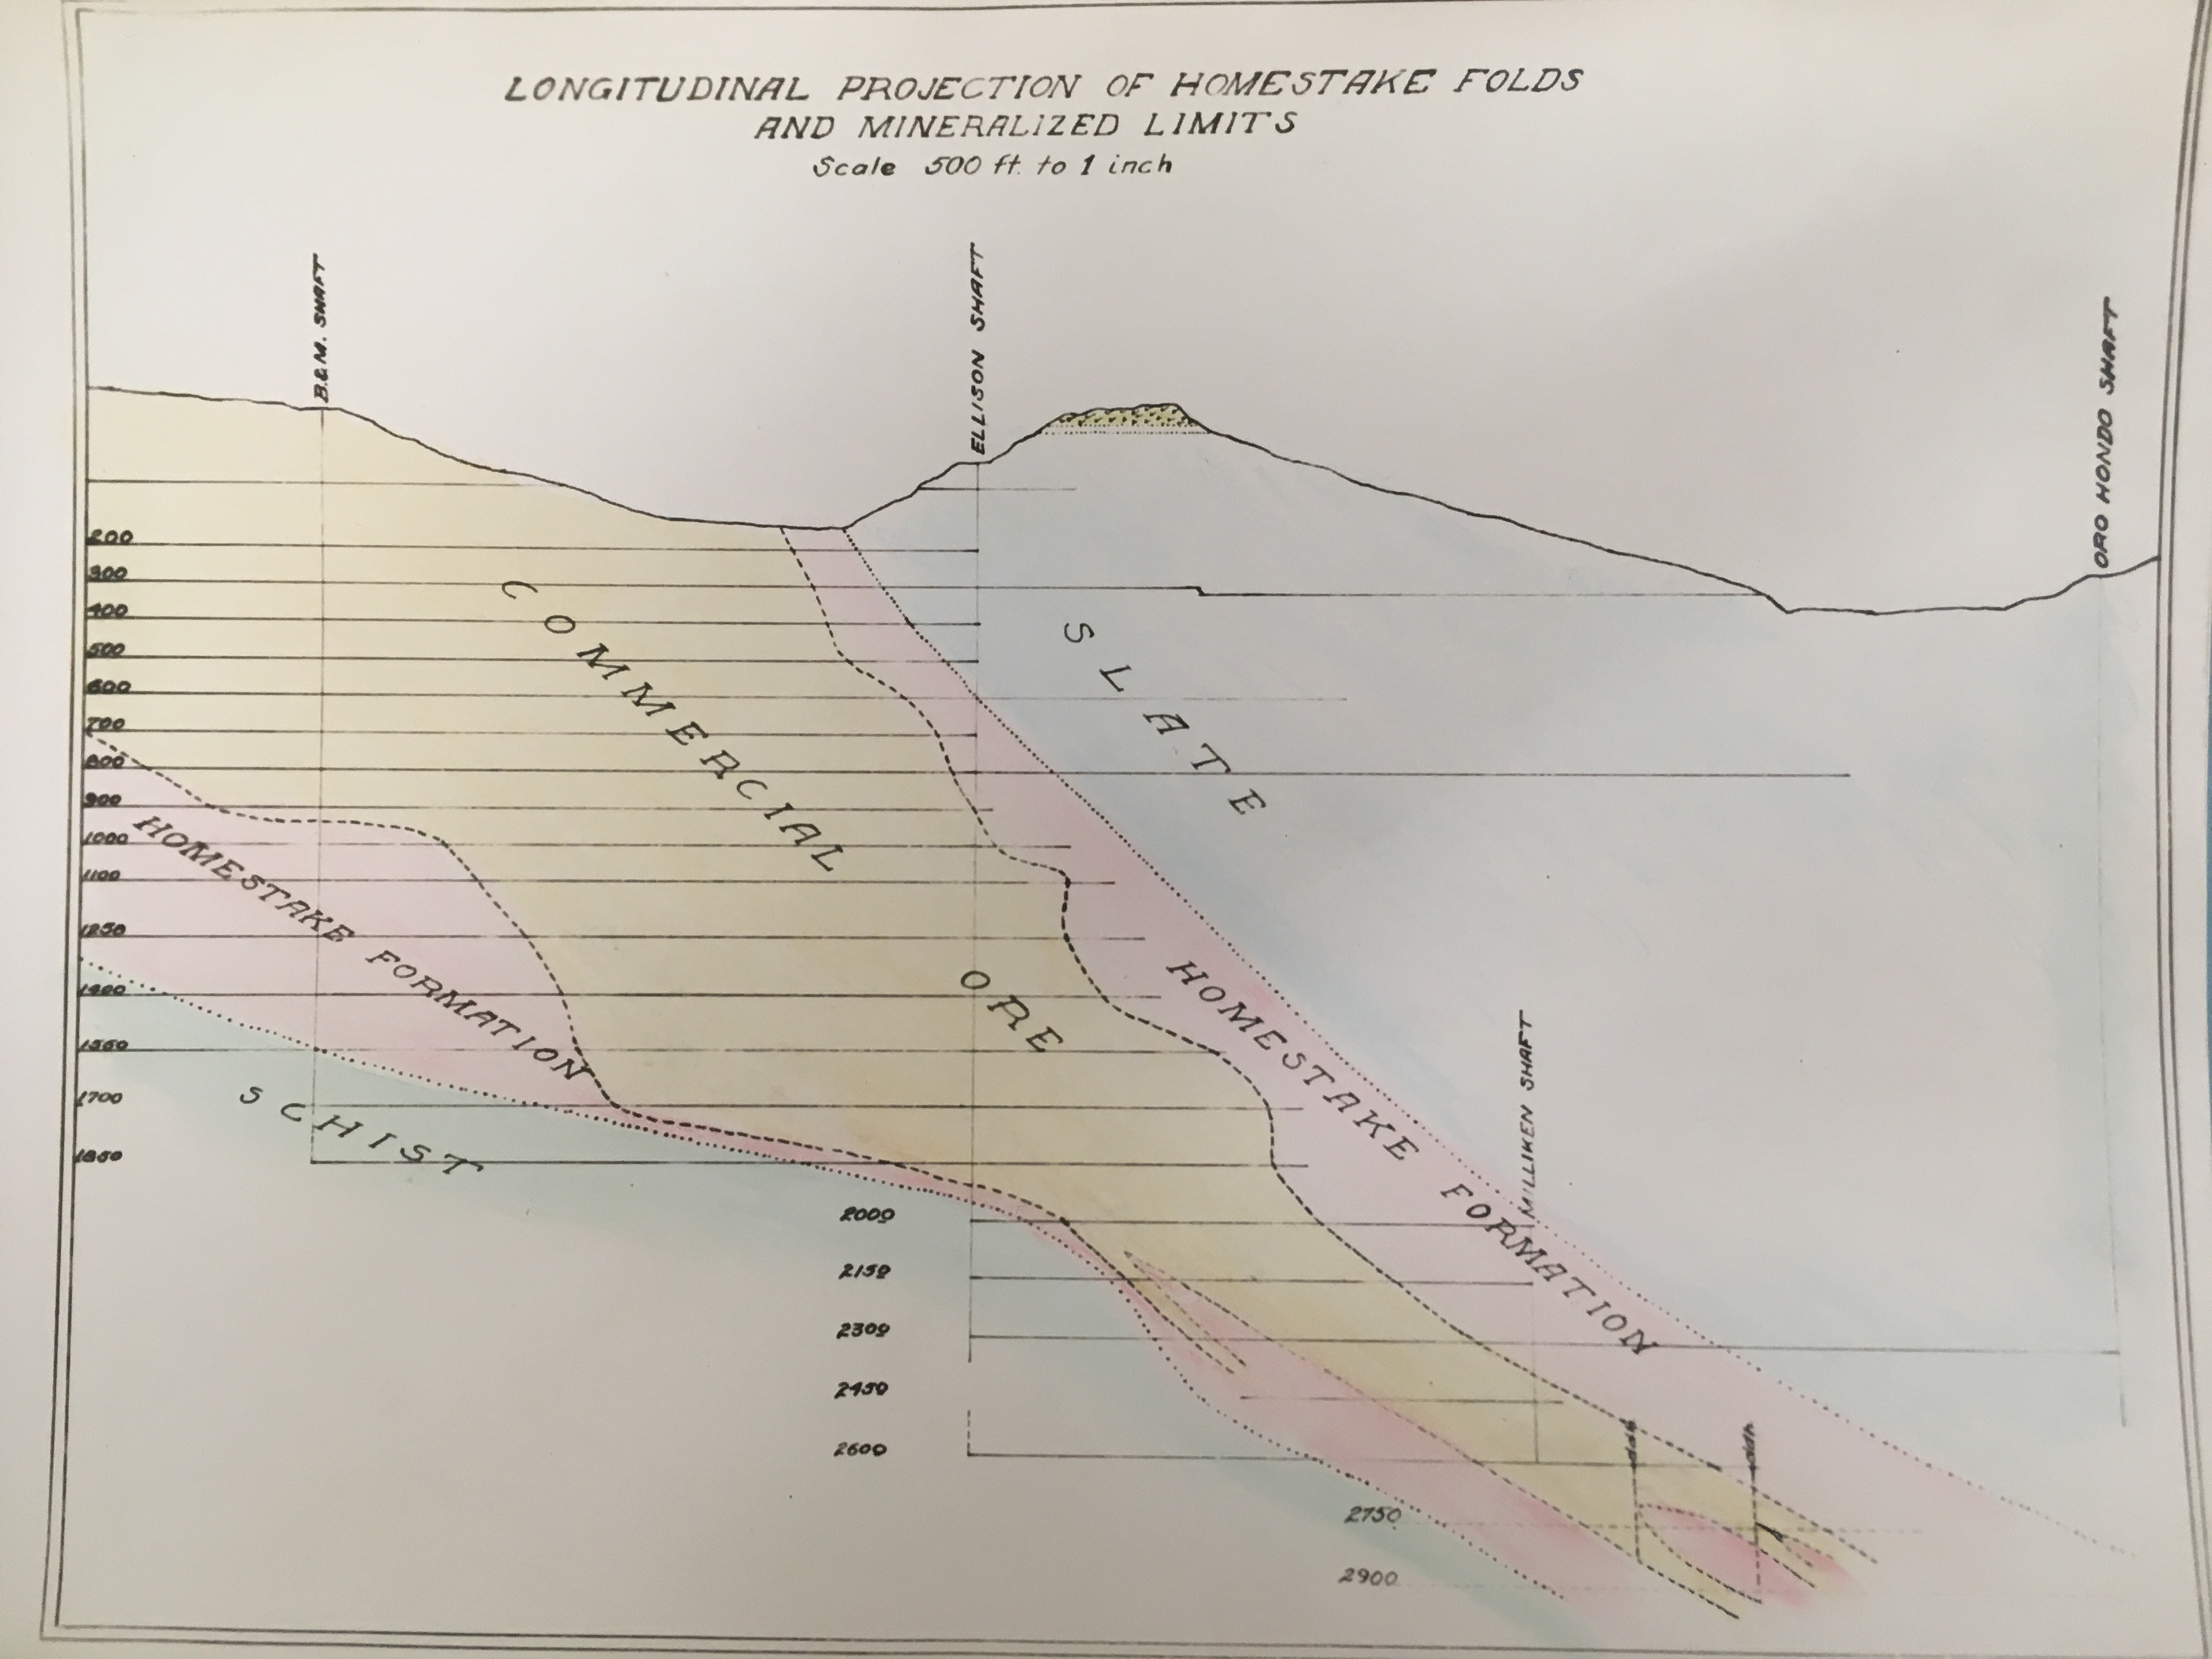 Subsurface geology diagram of the mine property in color